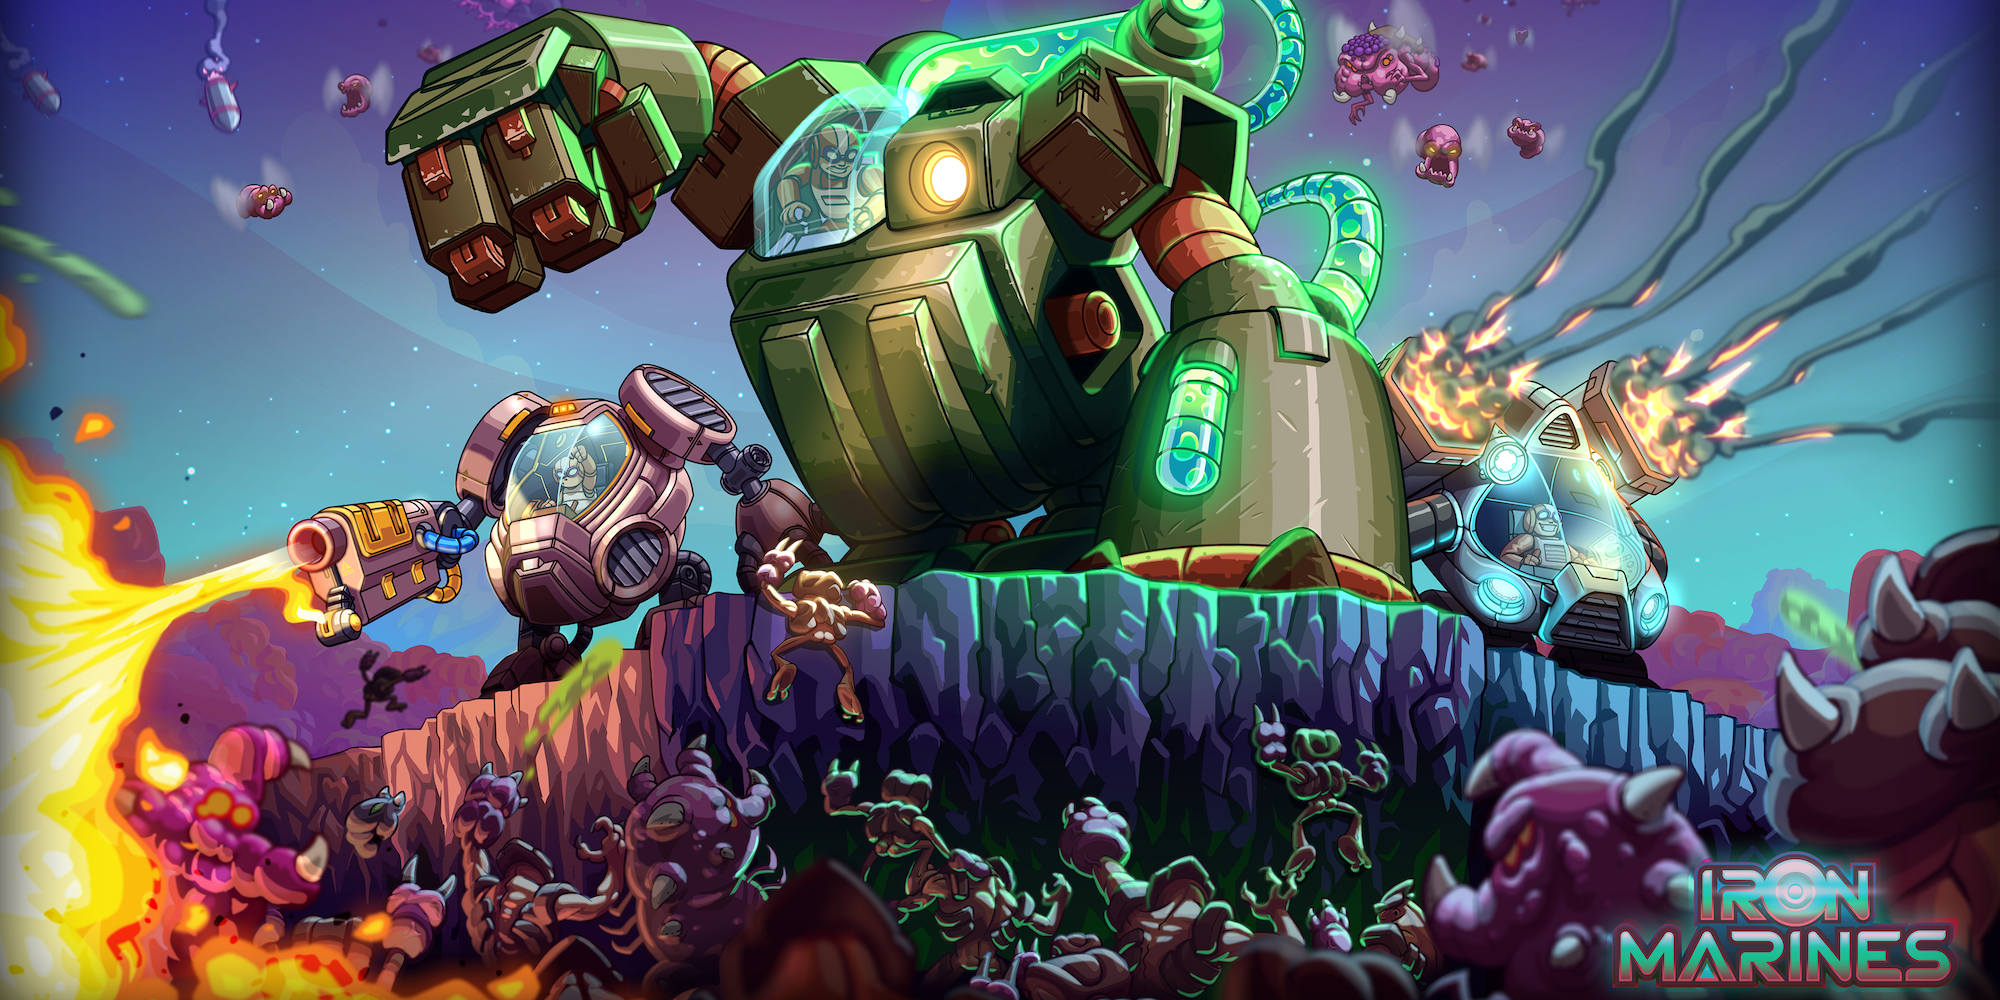 The Iron Marines real-time strategy game for iOS now matching the all-time low at $3 (Reg. $5)